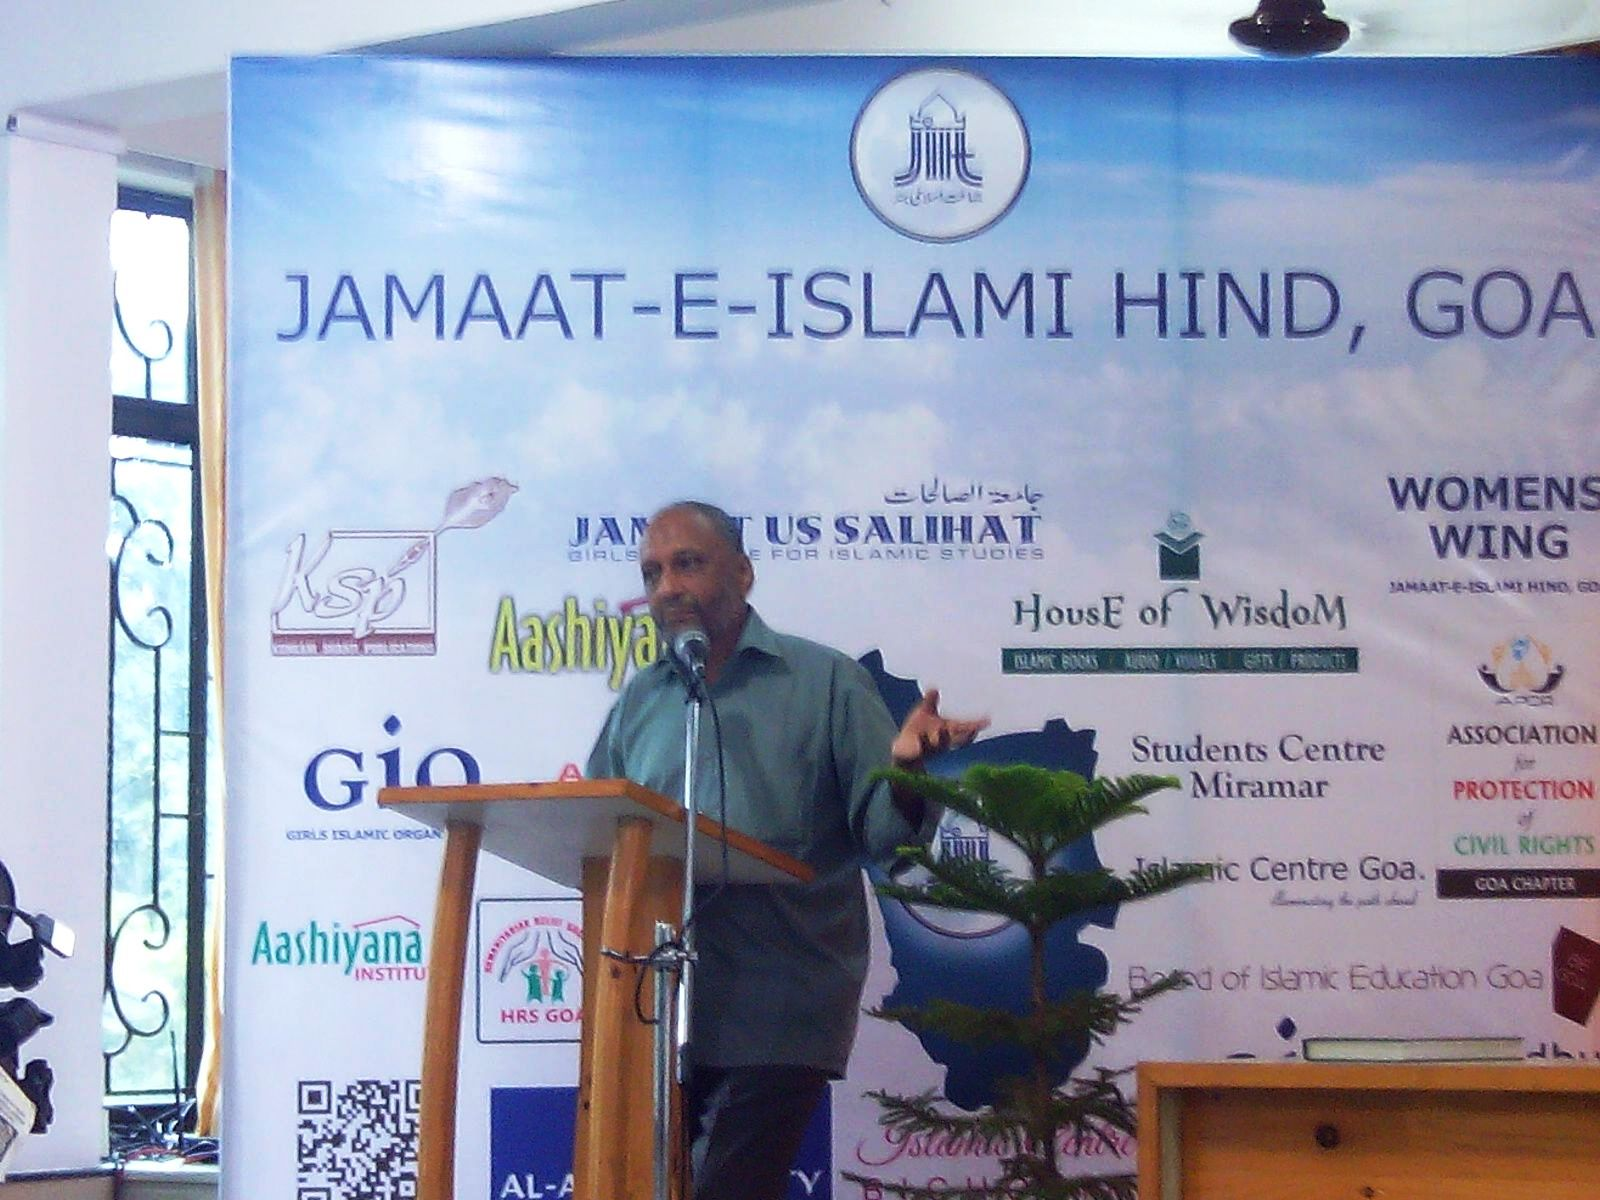 Jb. Abdul Wahid Khan [Ameer- e- Halqa - Goa] addressing the gathering